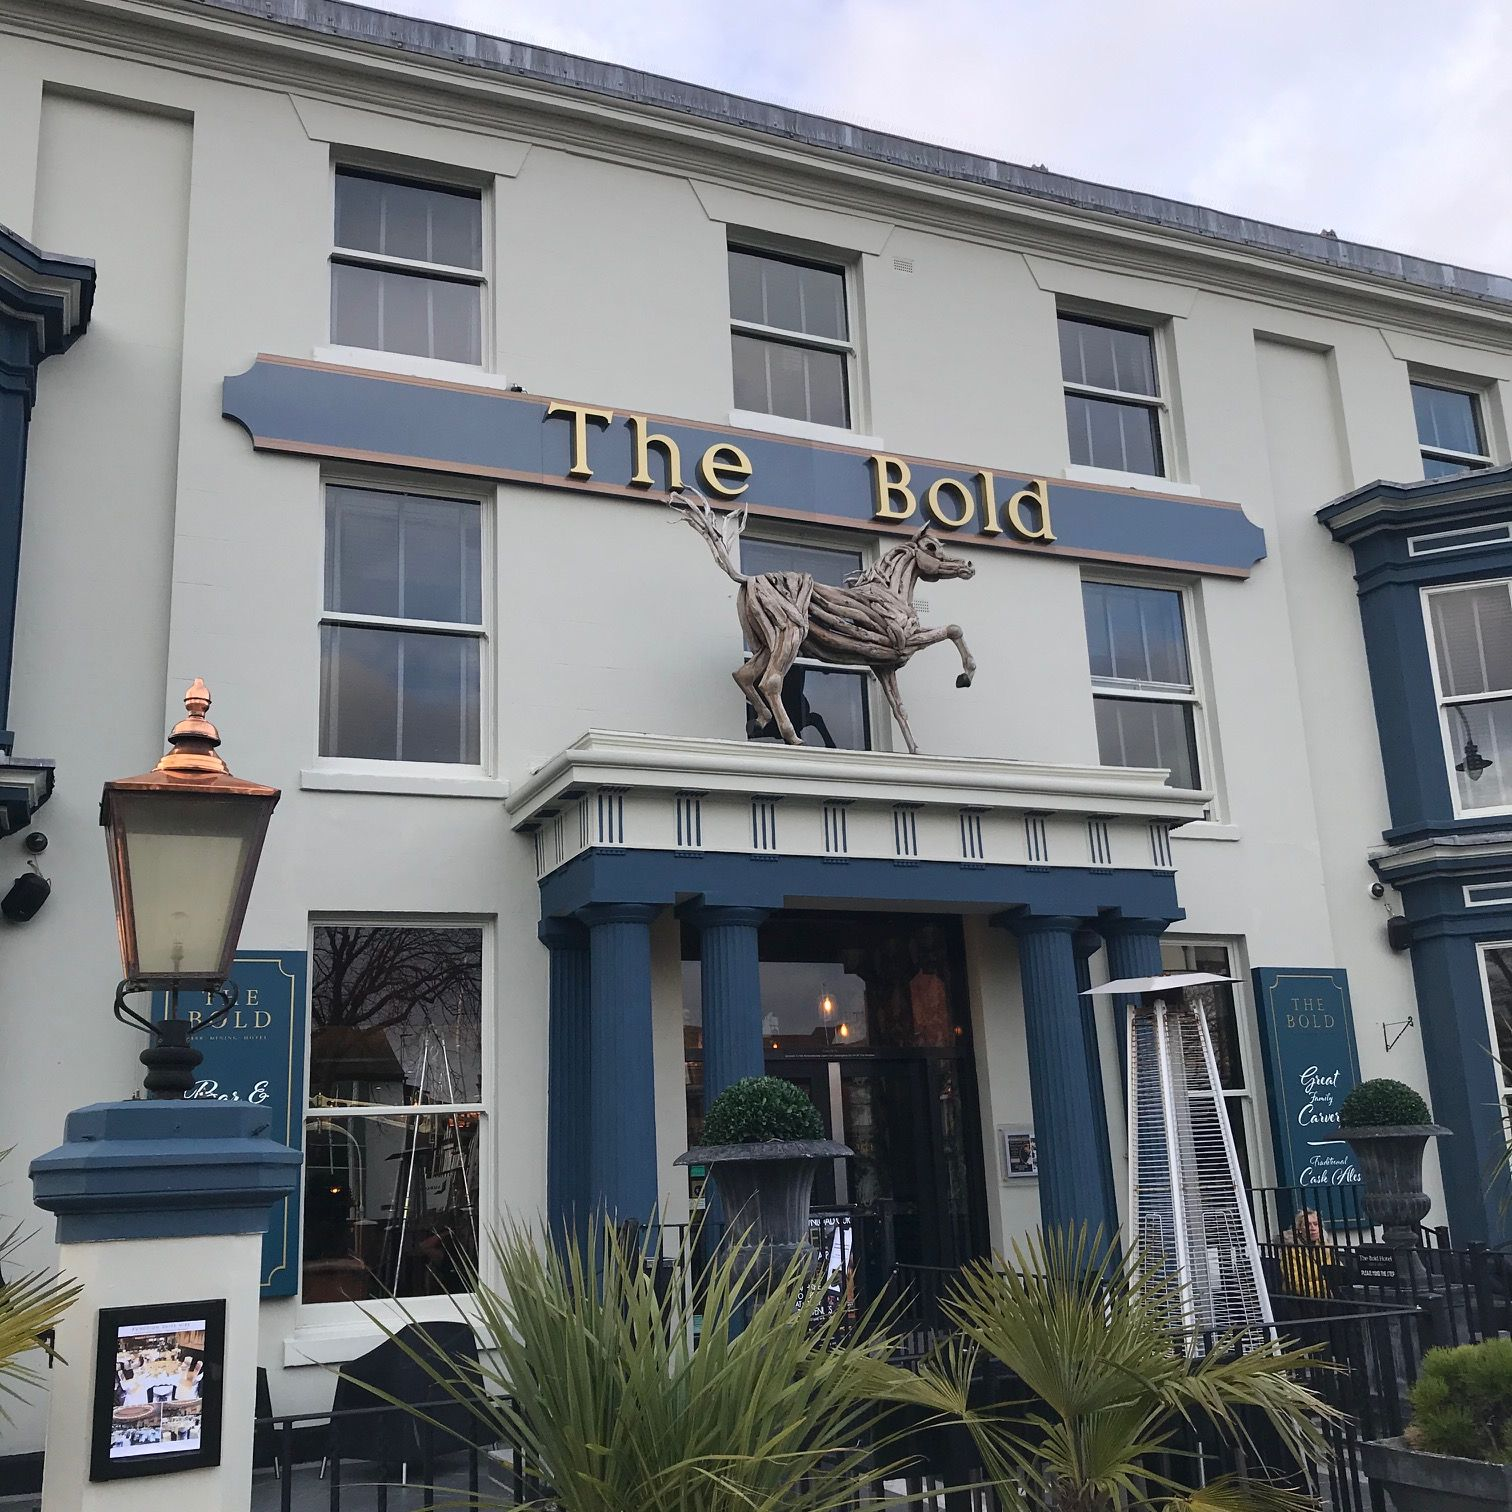 The Bold Hotel on Lord Street in Southport. Photo by Andrew Brown Media